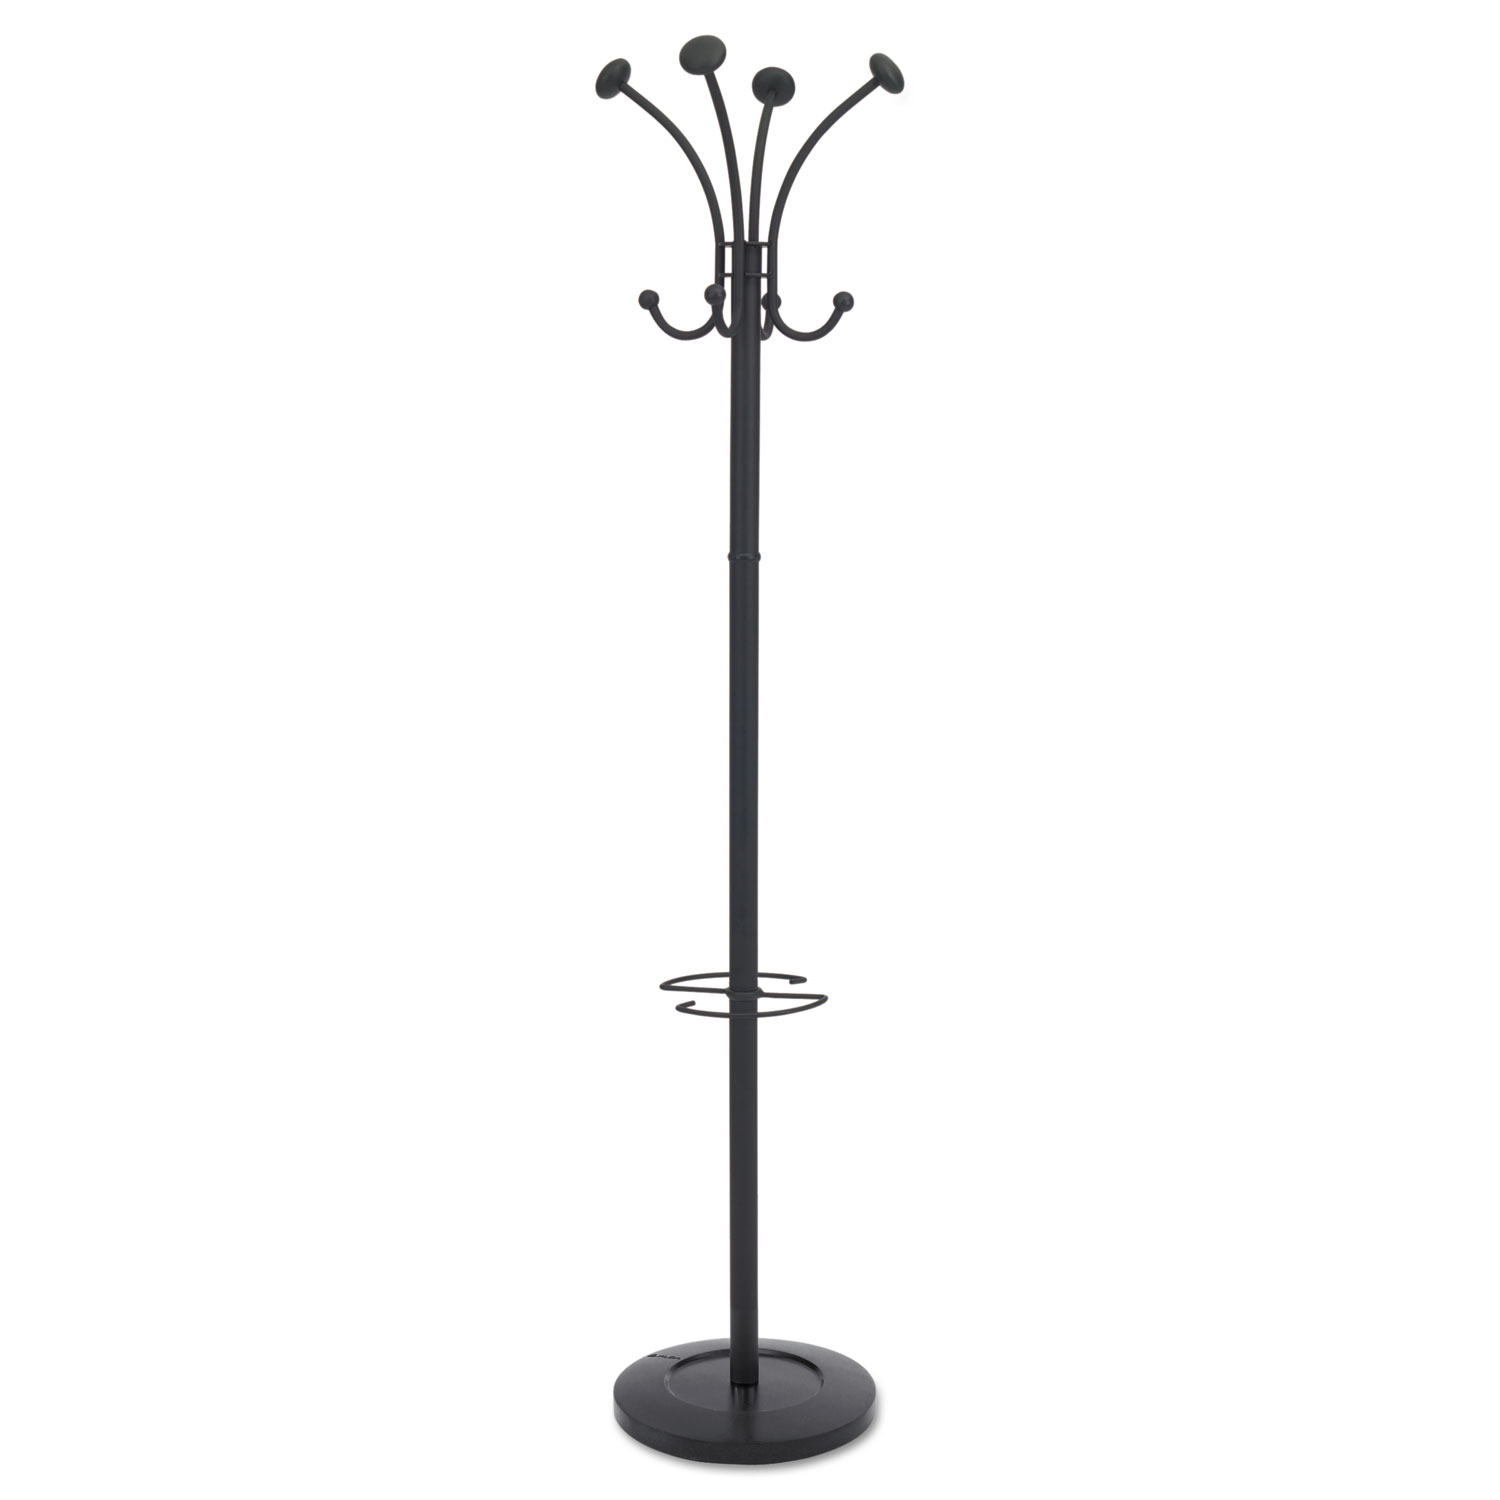 Viena Coat Stand, Eight Knobs, Steel, 16w x 16d x 70.5h, Black